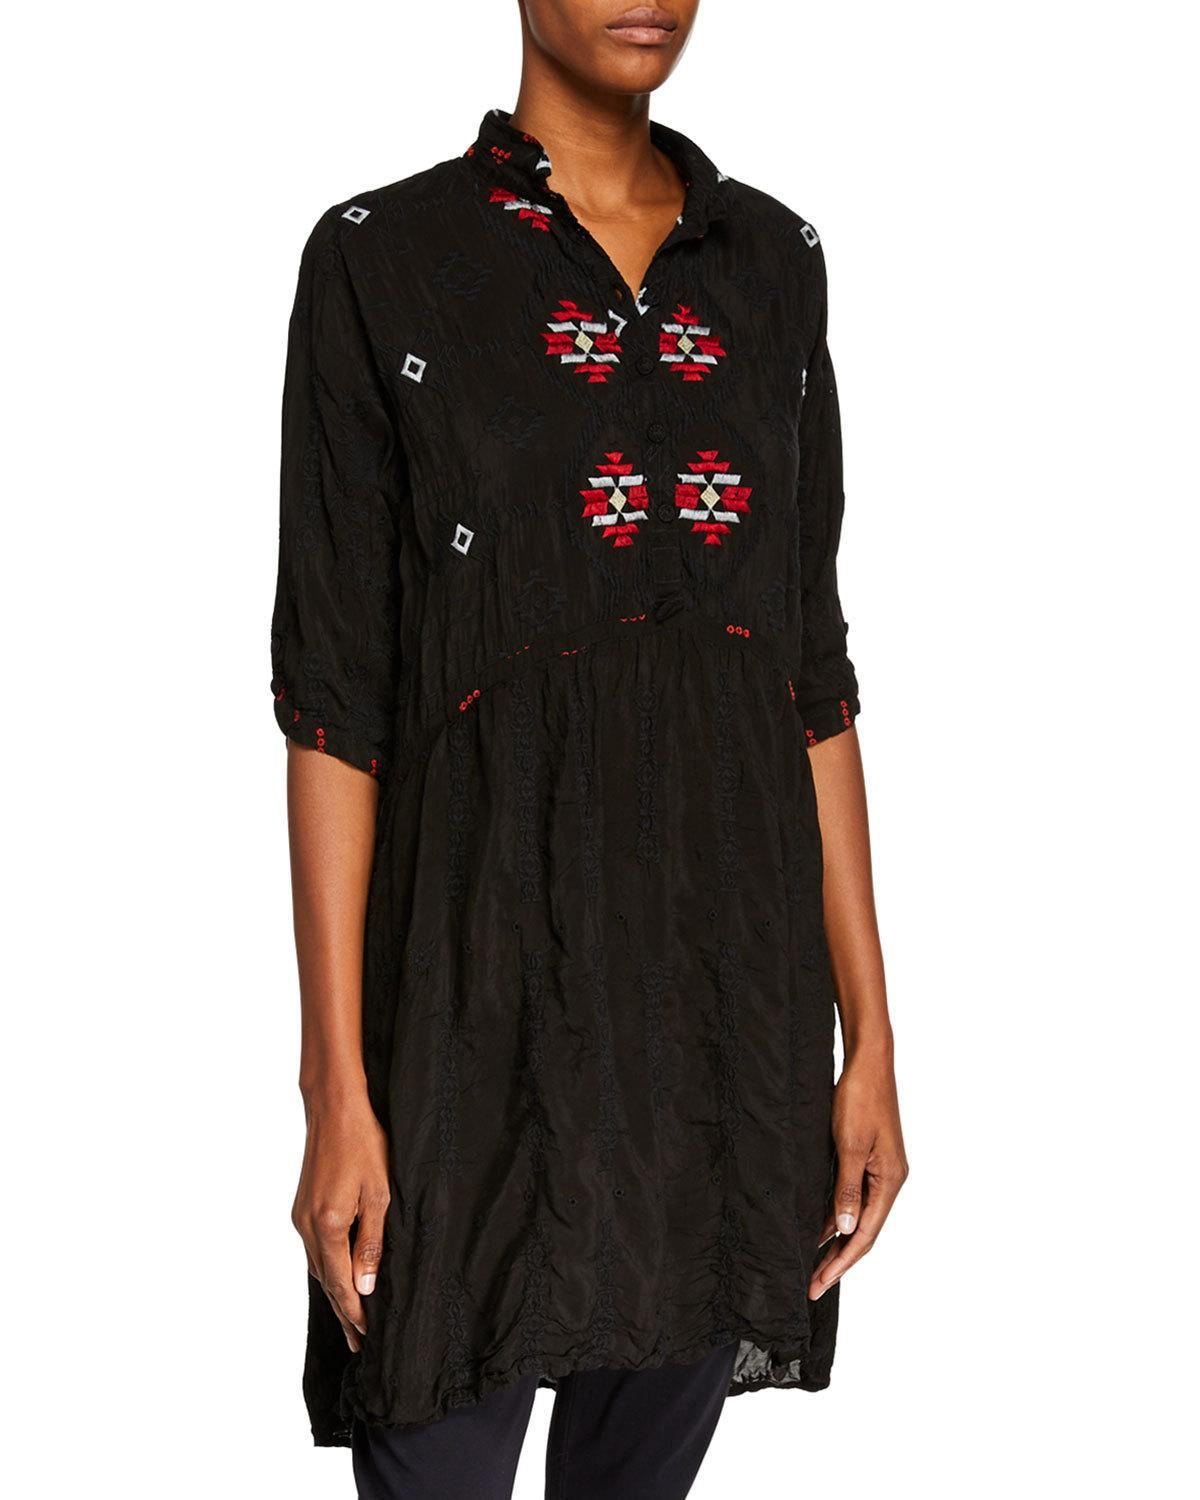 ecad24f82c4 Lyst - Johnny Was Pocca Half-sleeve Embroidered Tunic Dress in Black ...